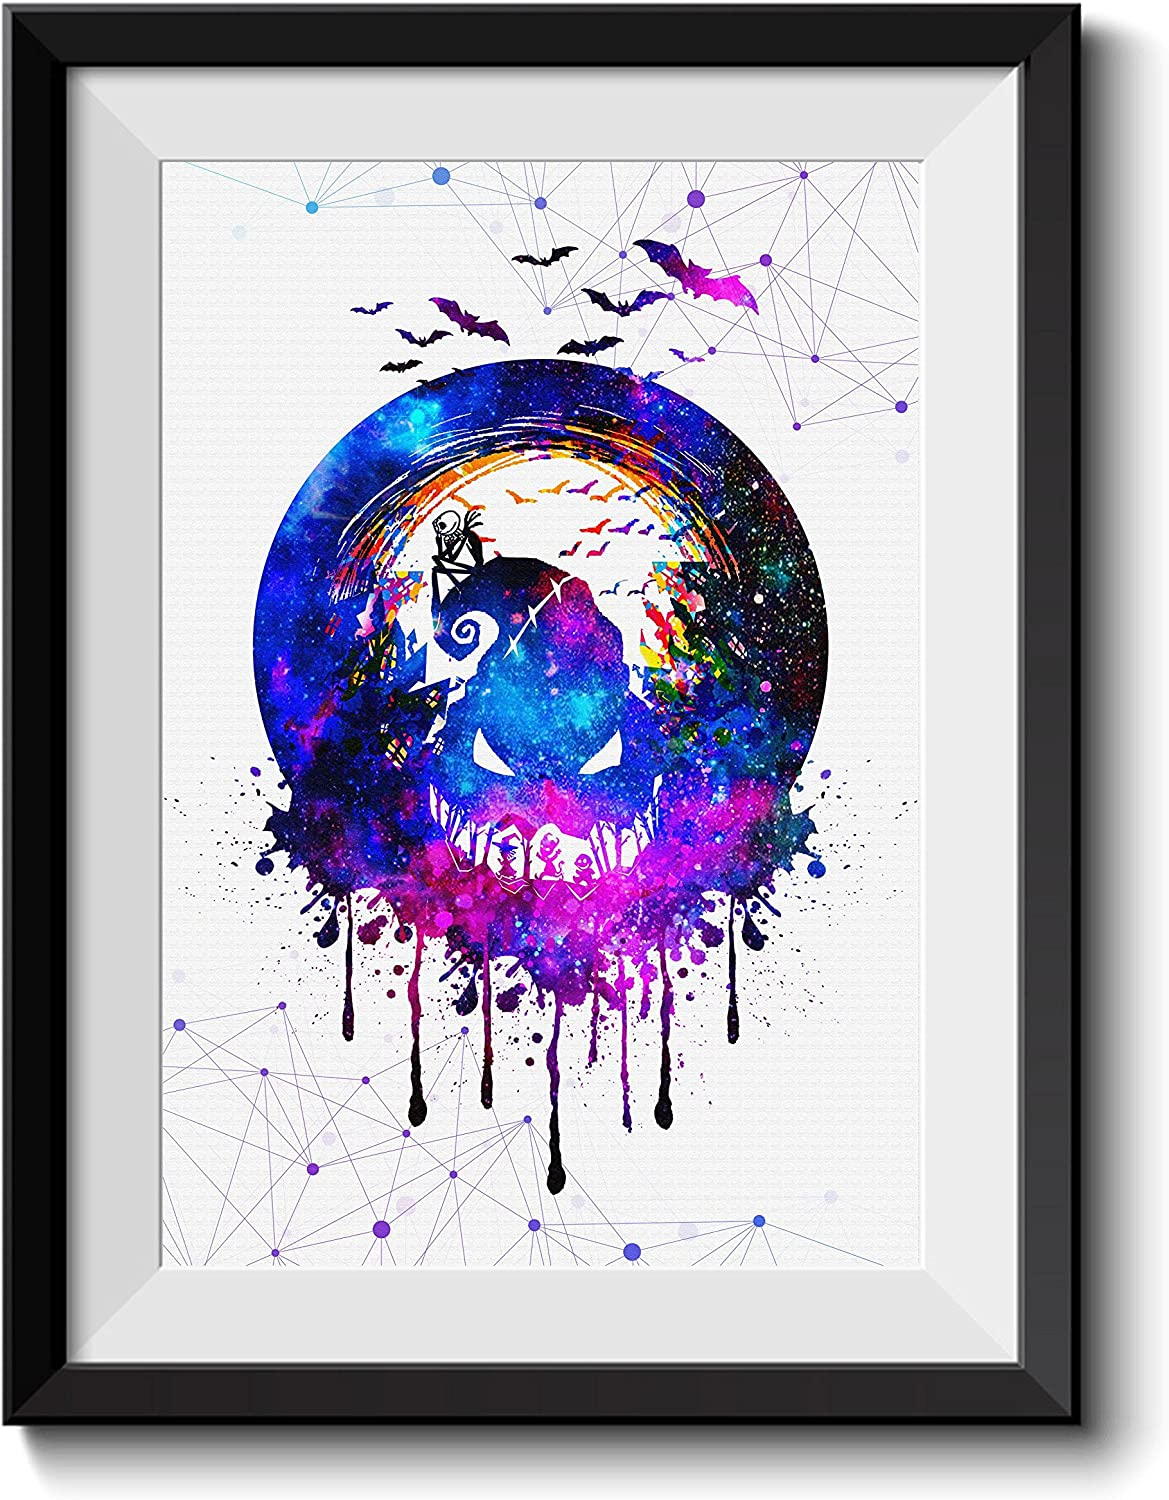 Uhomate Jack and Sally Nightmare Before Christmas Home Canvas Prints Wall Art Anniversary Gifts Baby Gift Inspirational Quotes Wall Decor Living Room Bedroom Bathroom Artwork C027 (13X19)